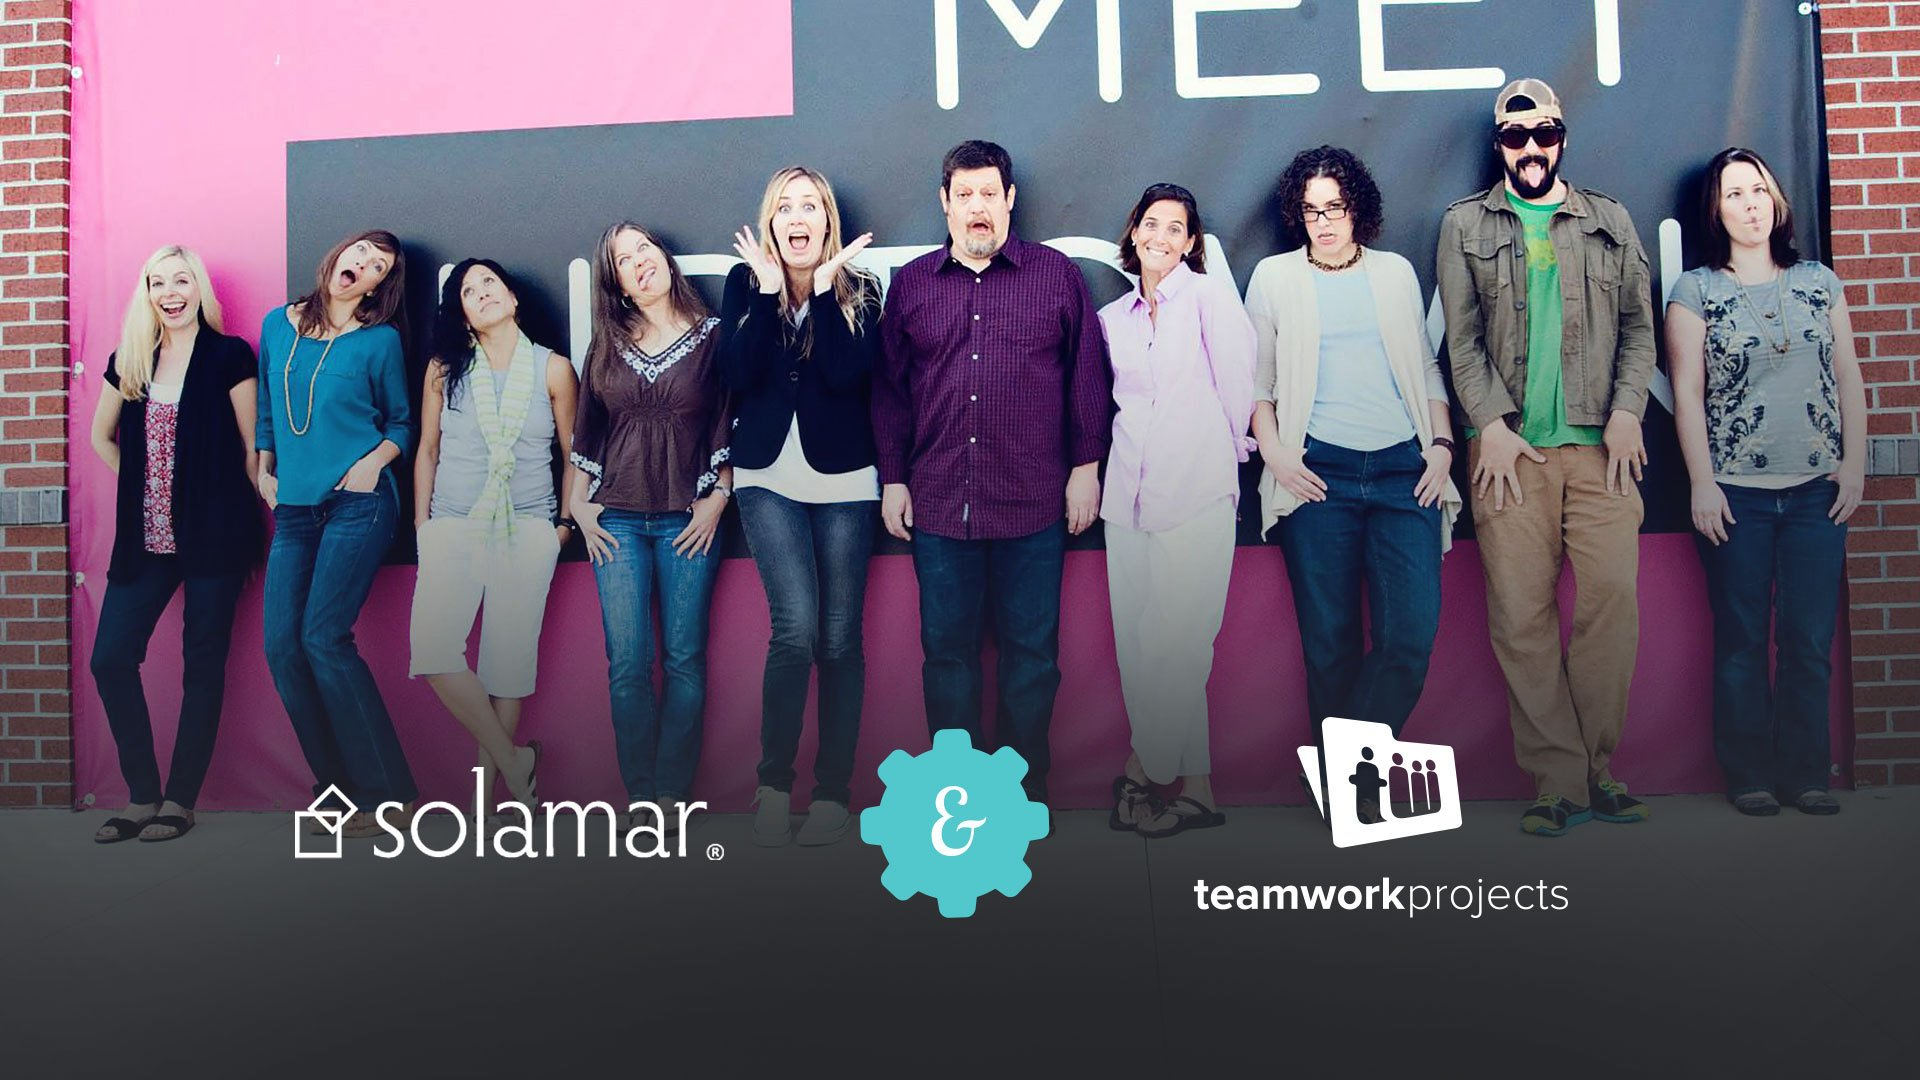 Teamwork Projects a better alternative to Basecamp